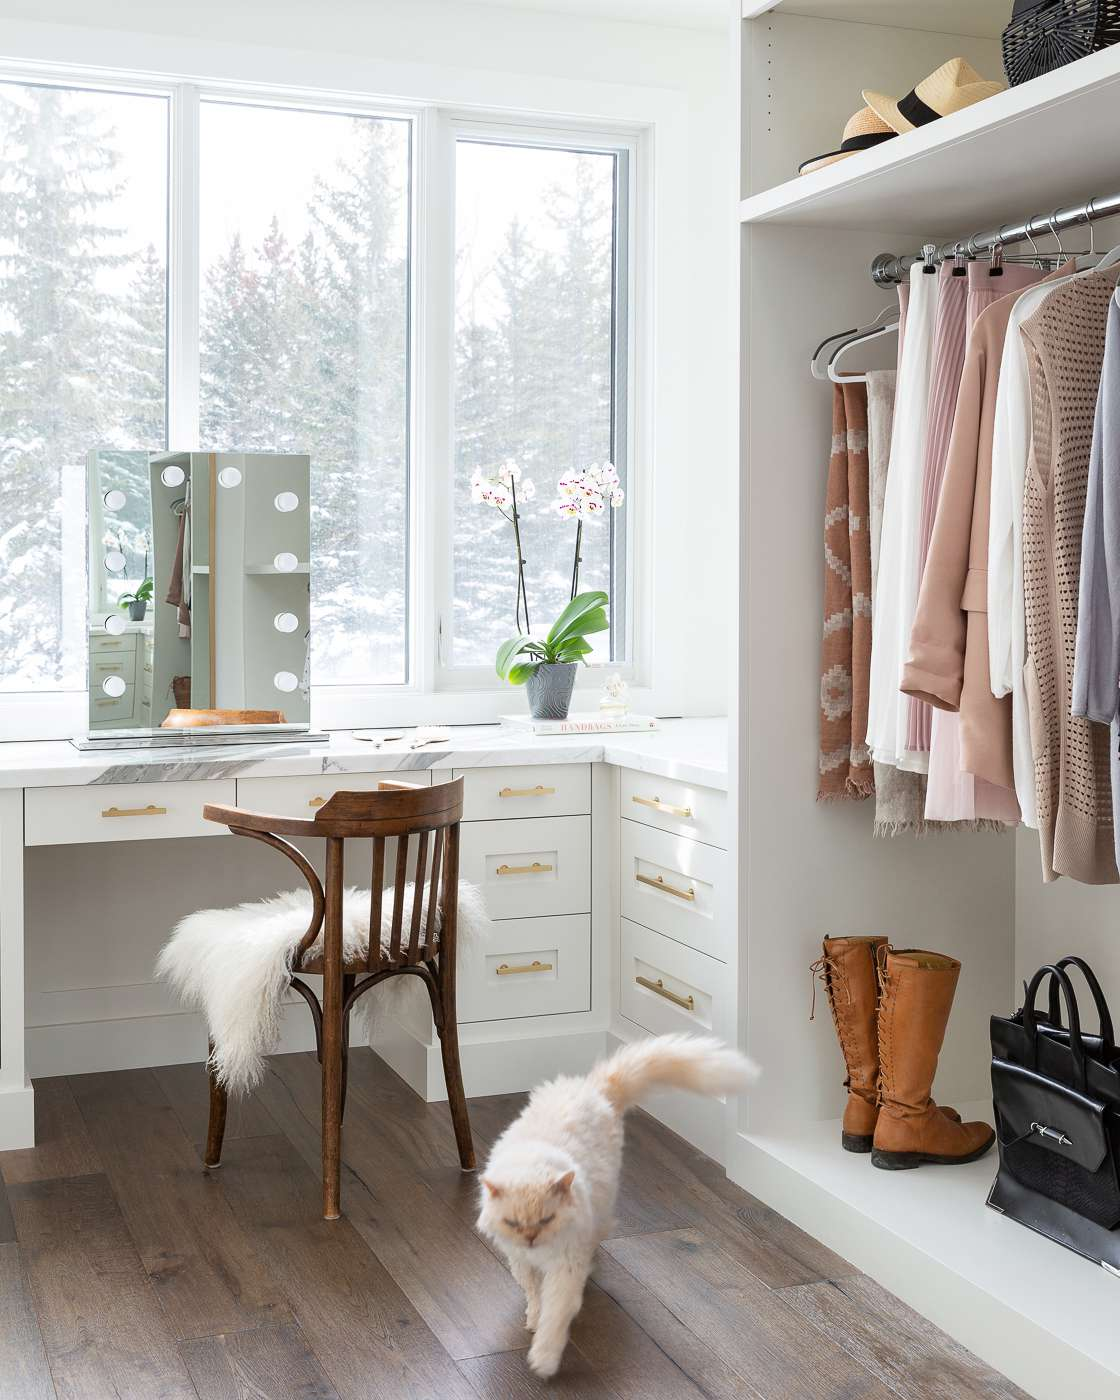 Walk in closet with vanity station